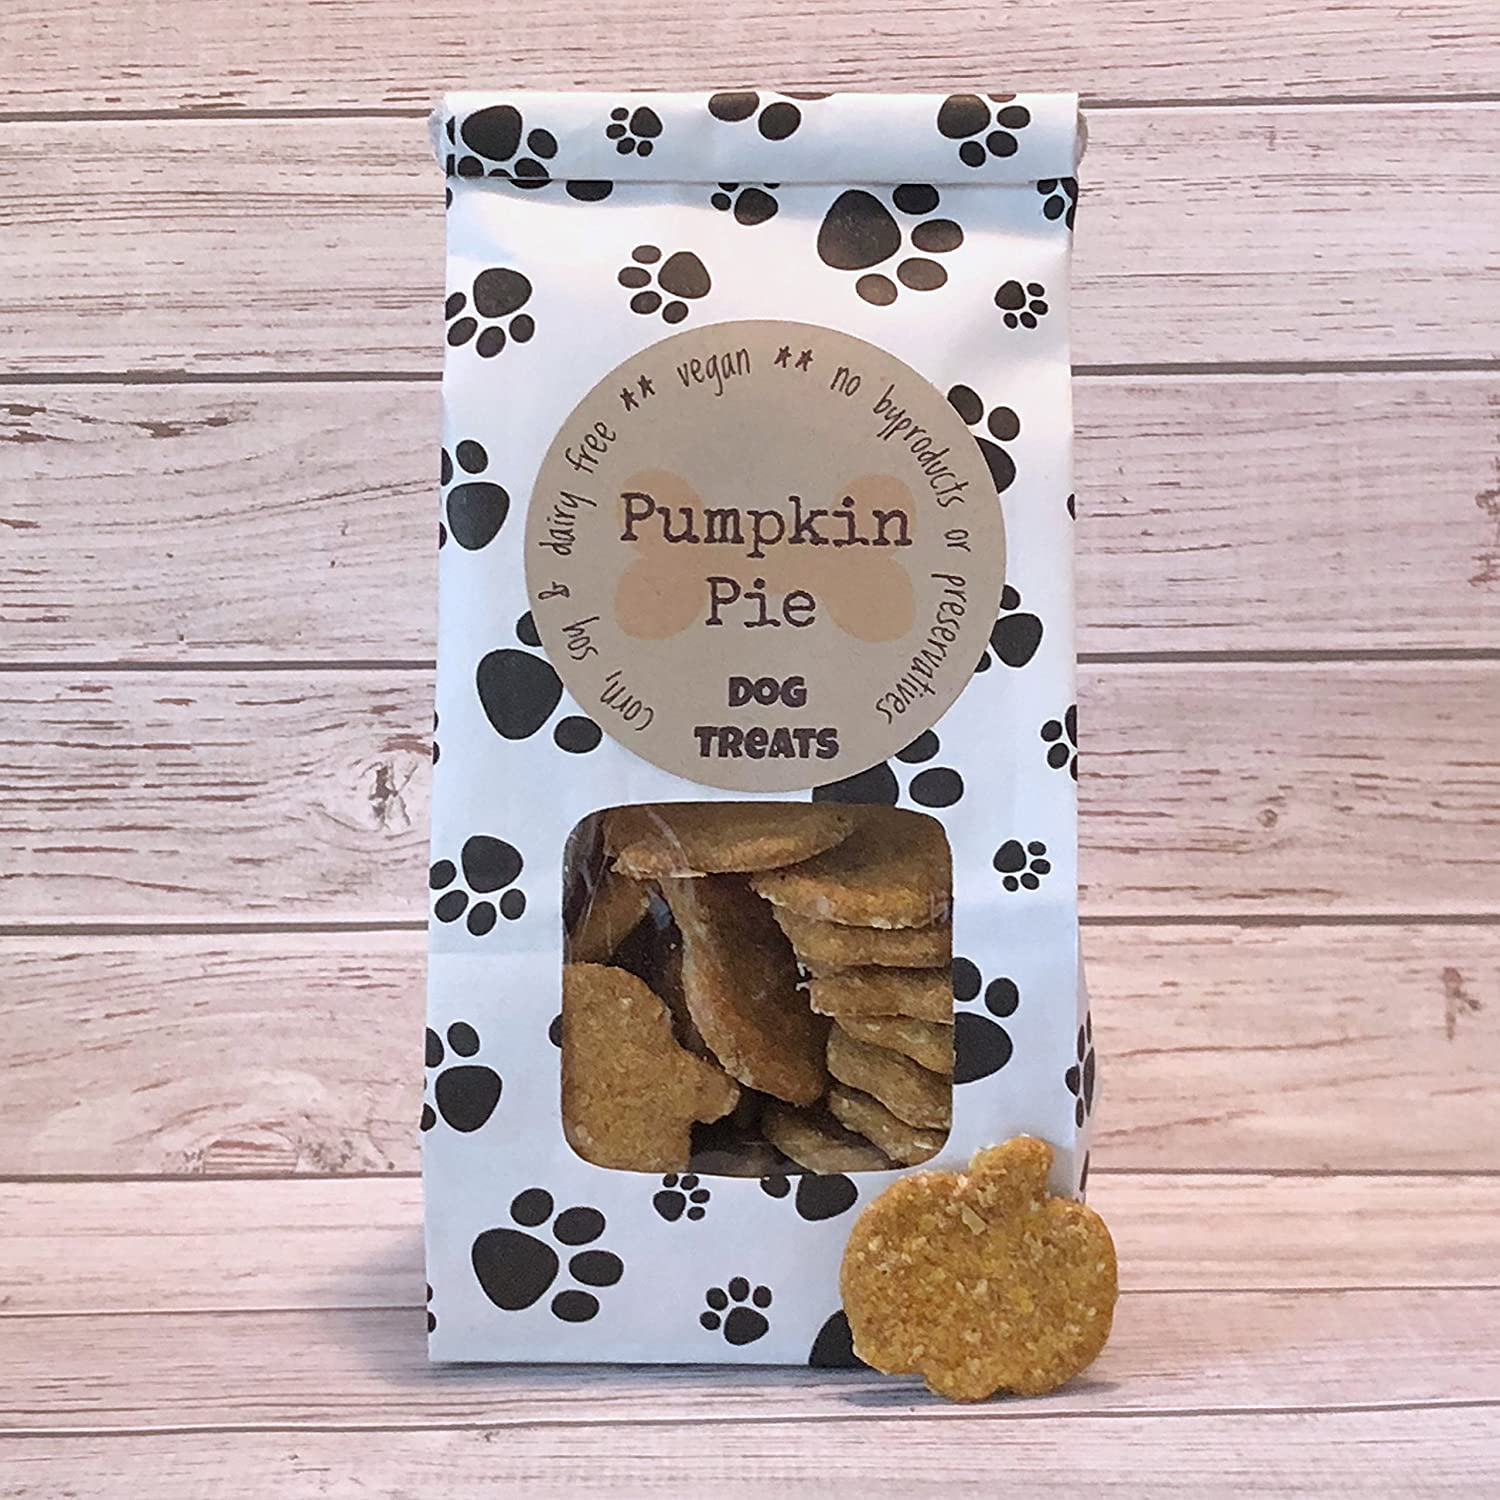 5 oz Pumpkin Pie Dog Treats/Handmade/Corn Soy and Dairy Free/Egg Free/Vegan/No Added Preservatives, Fillers or Color